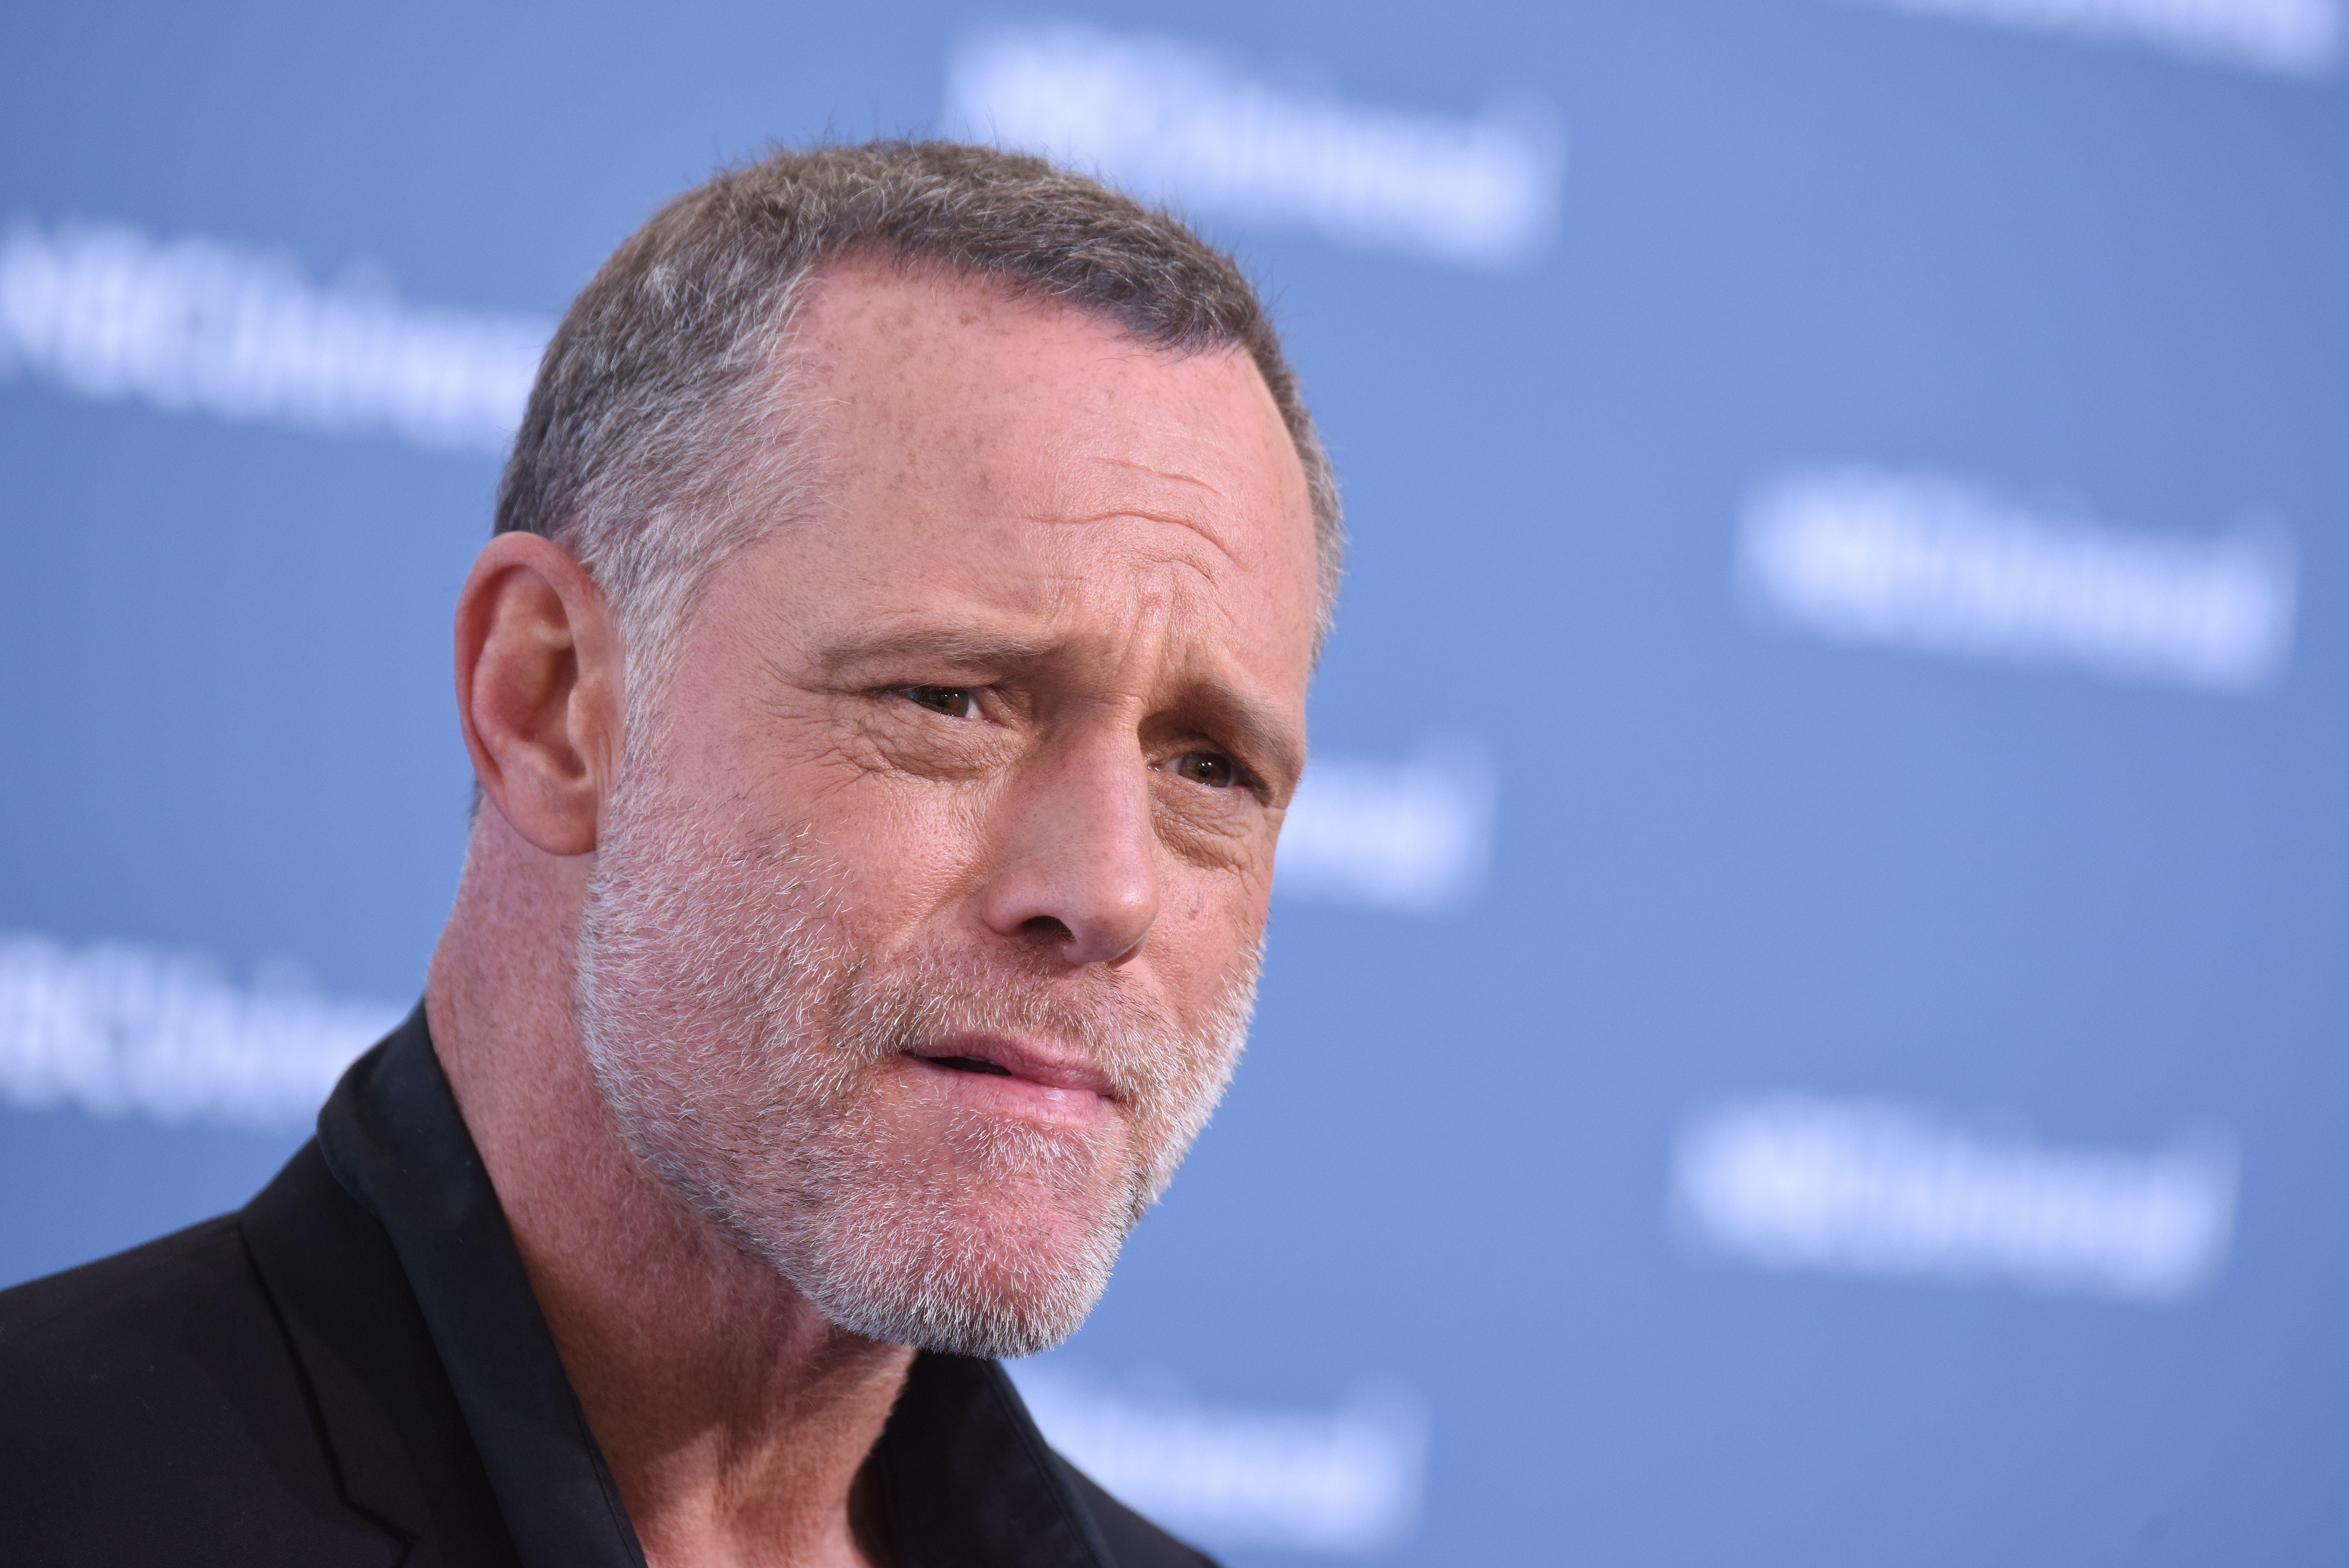 Jason Beghe in Chicago PD photo - Chicago PD picture #35